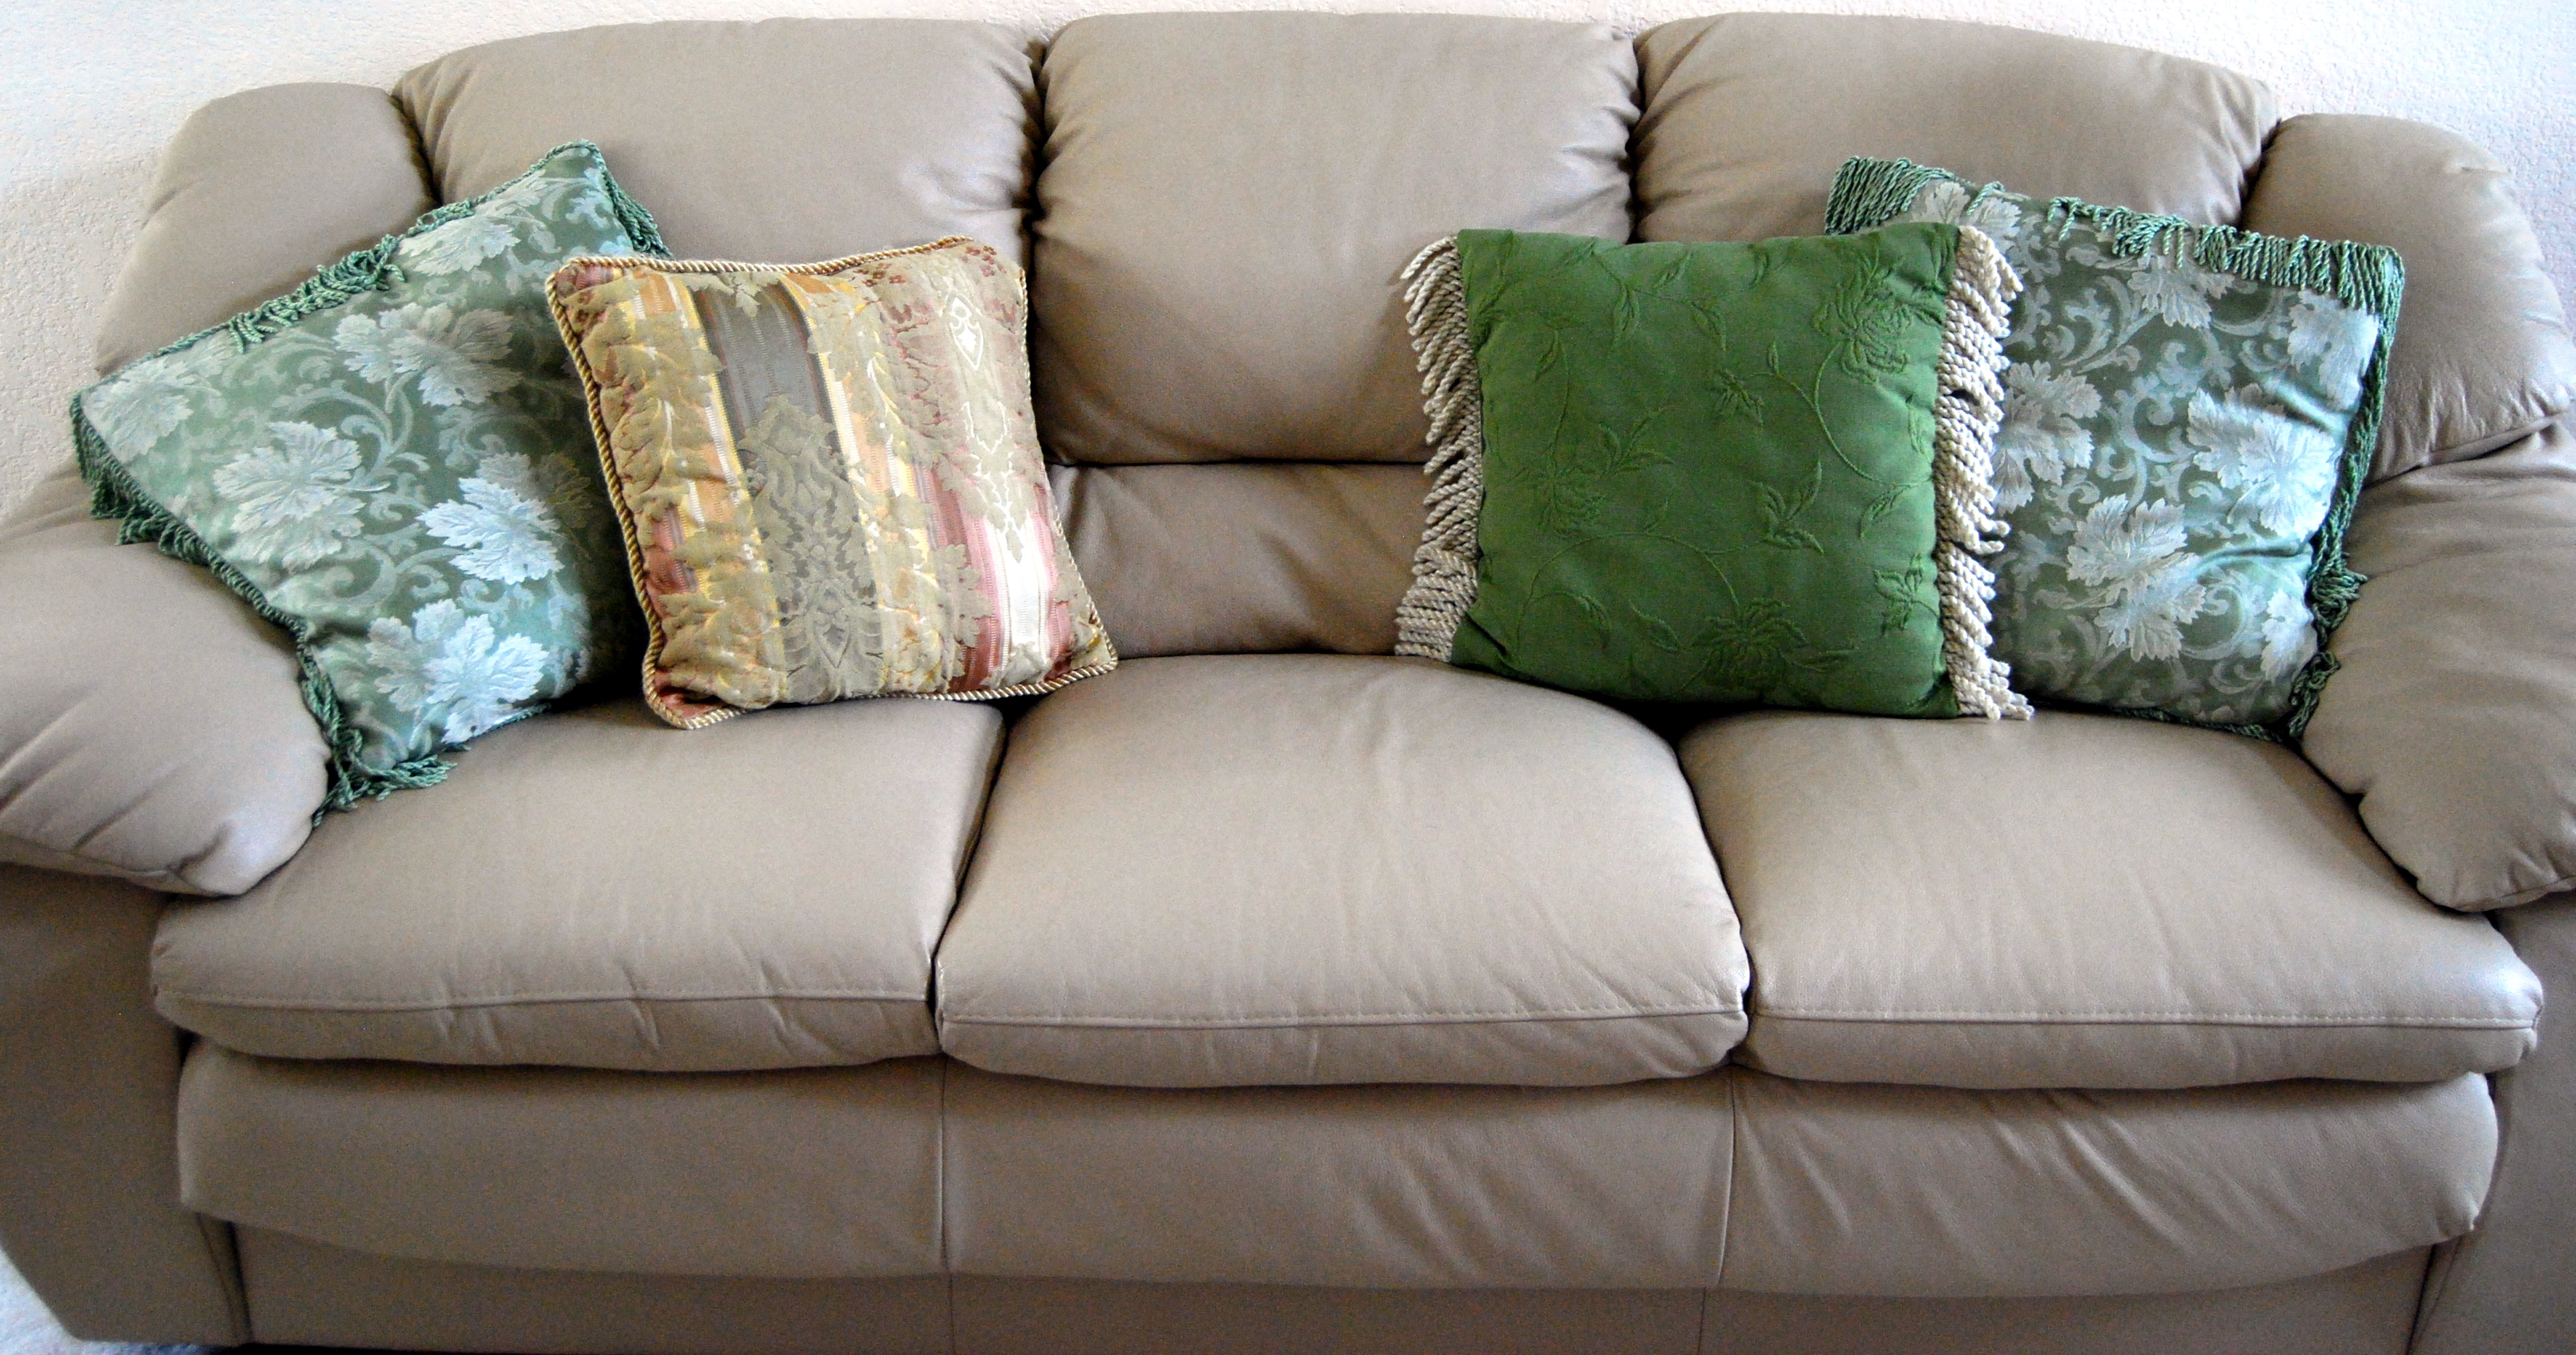 Benefits Of Using Sofa Covers